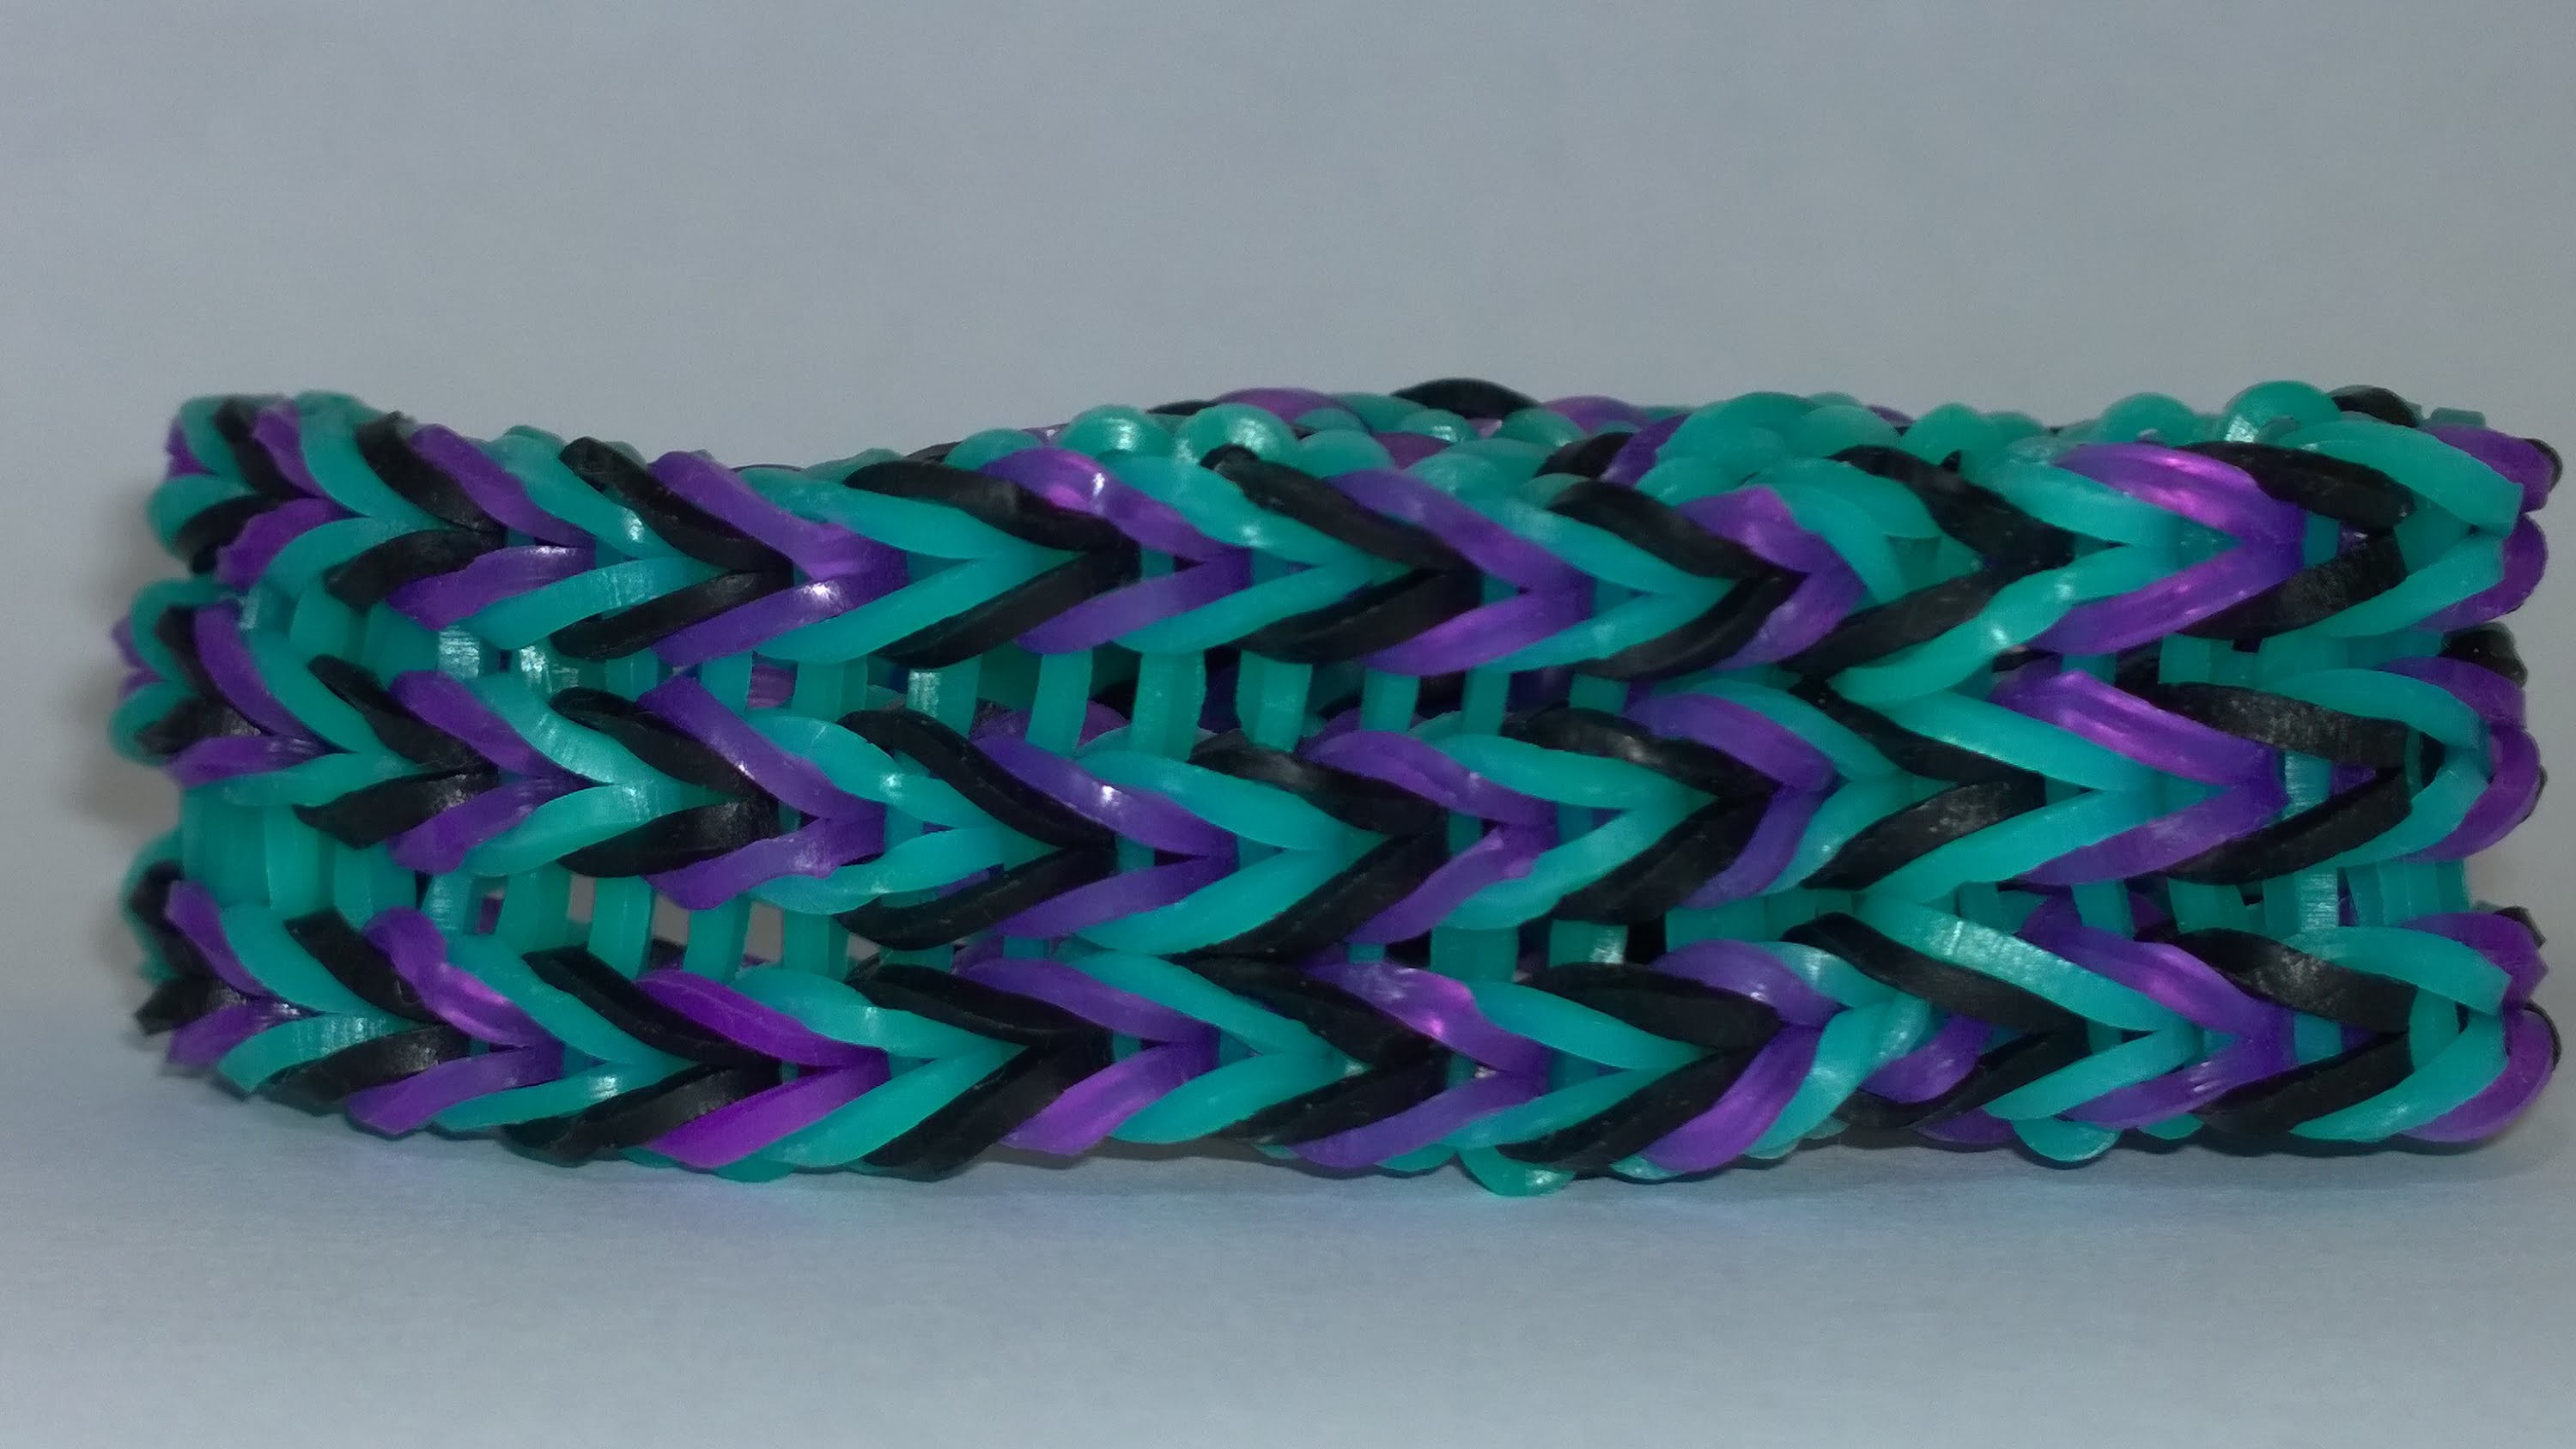 Rainbow Loom Triple Fishtail Bracelet without rainbow loom! Easy to make it! DIY!